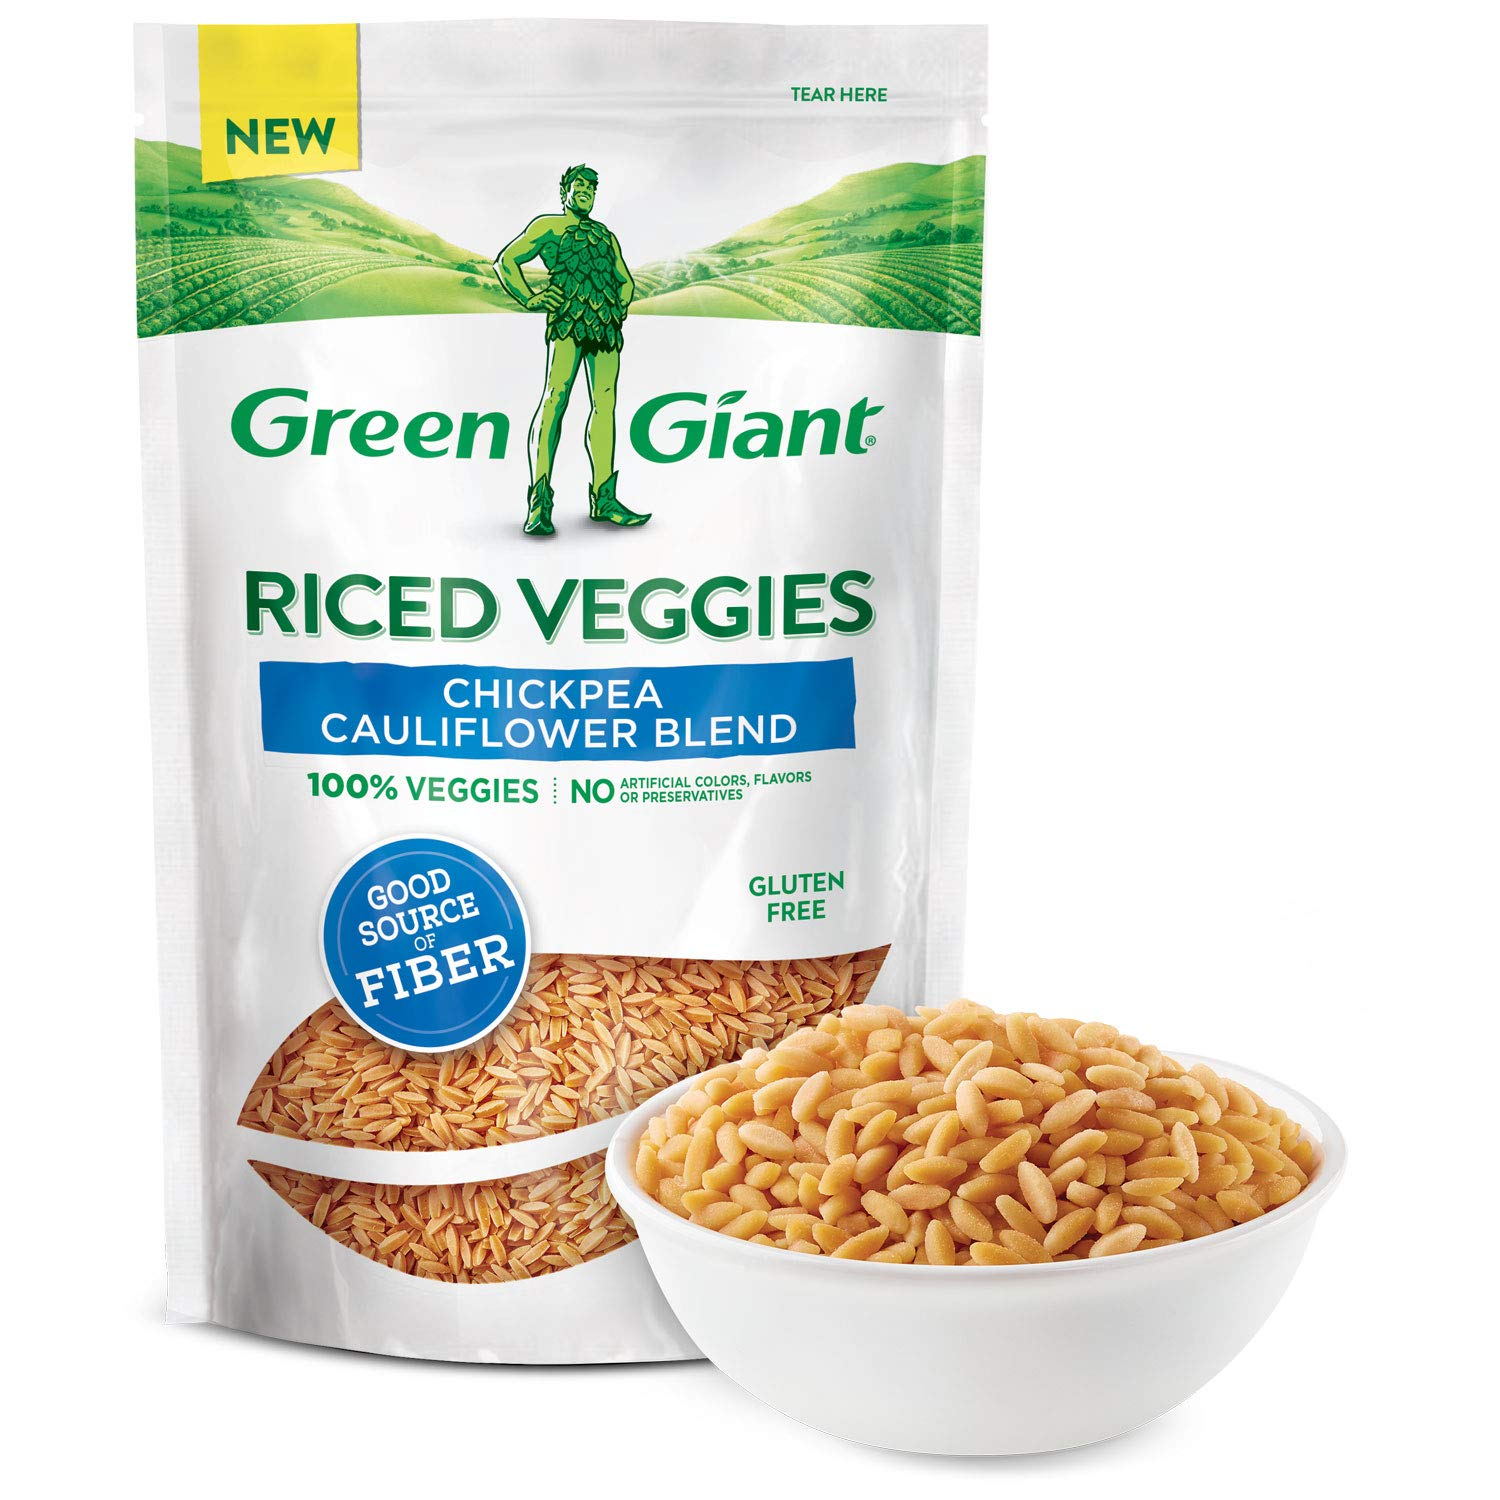 Green Giant Veggie Rice, Chickpea Cauliflower Blend, 7 Ounce